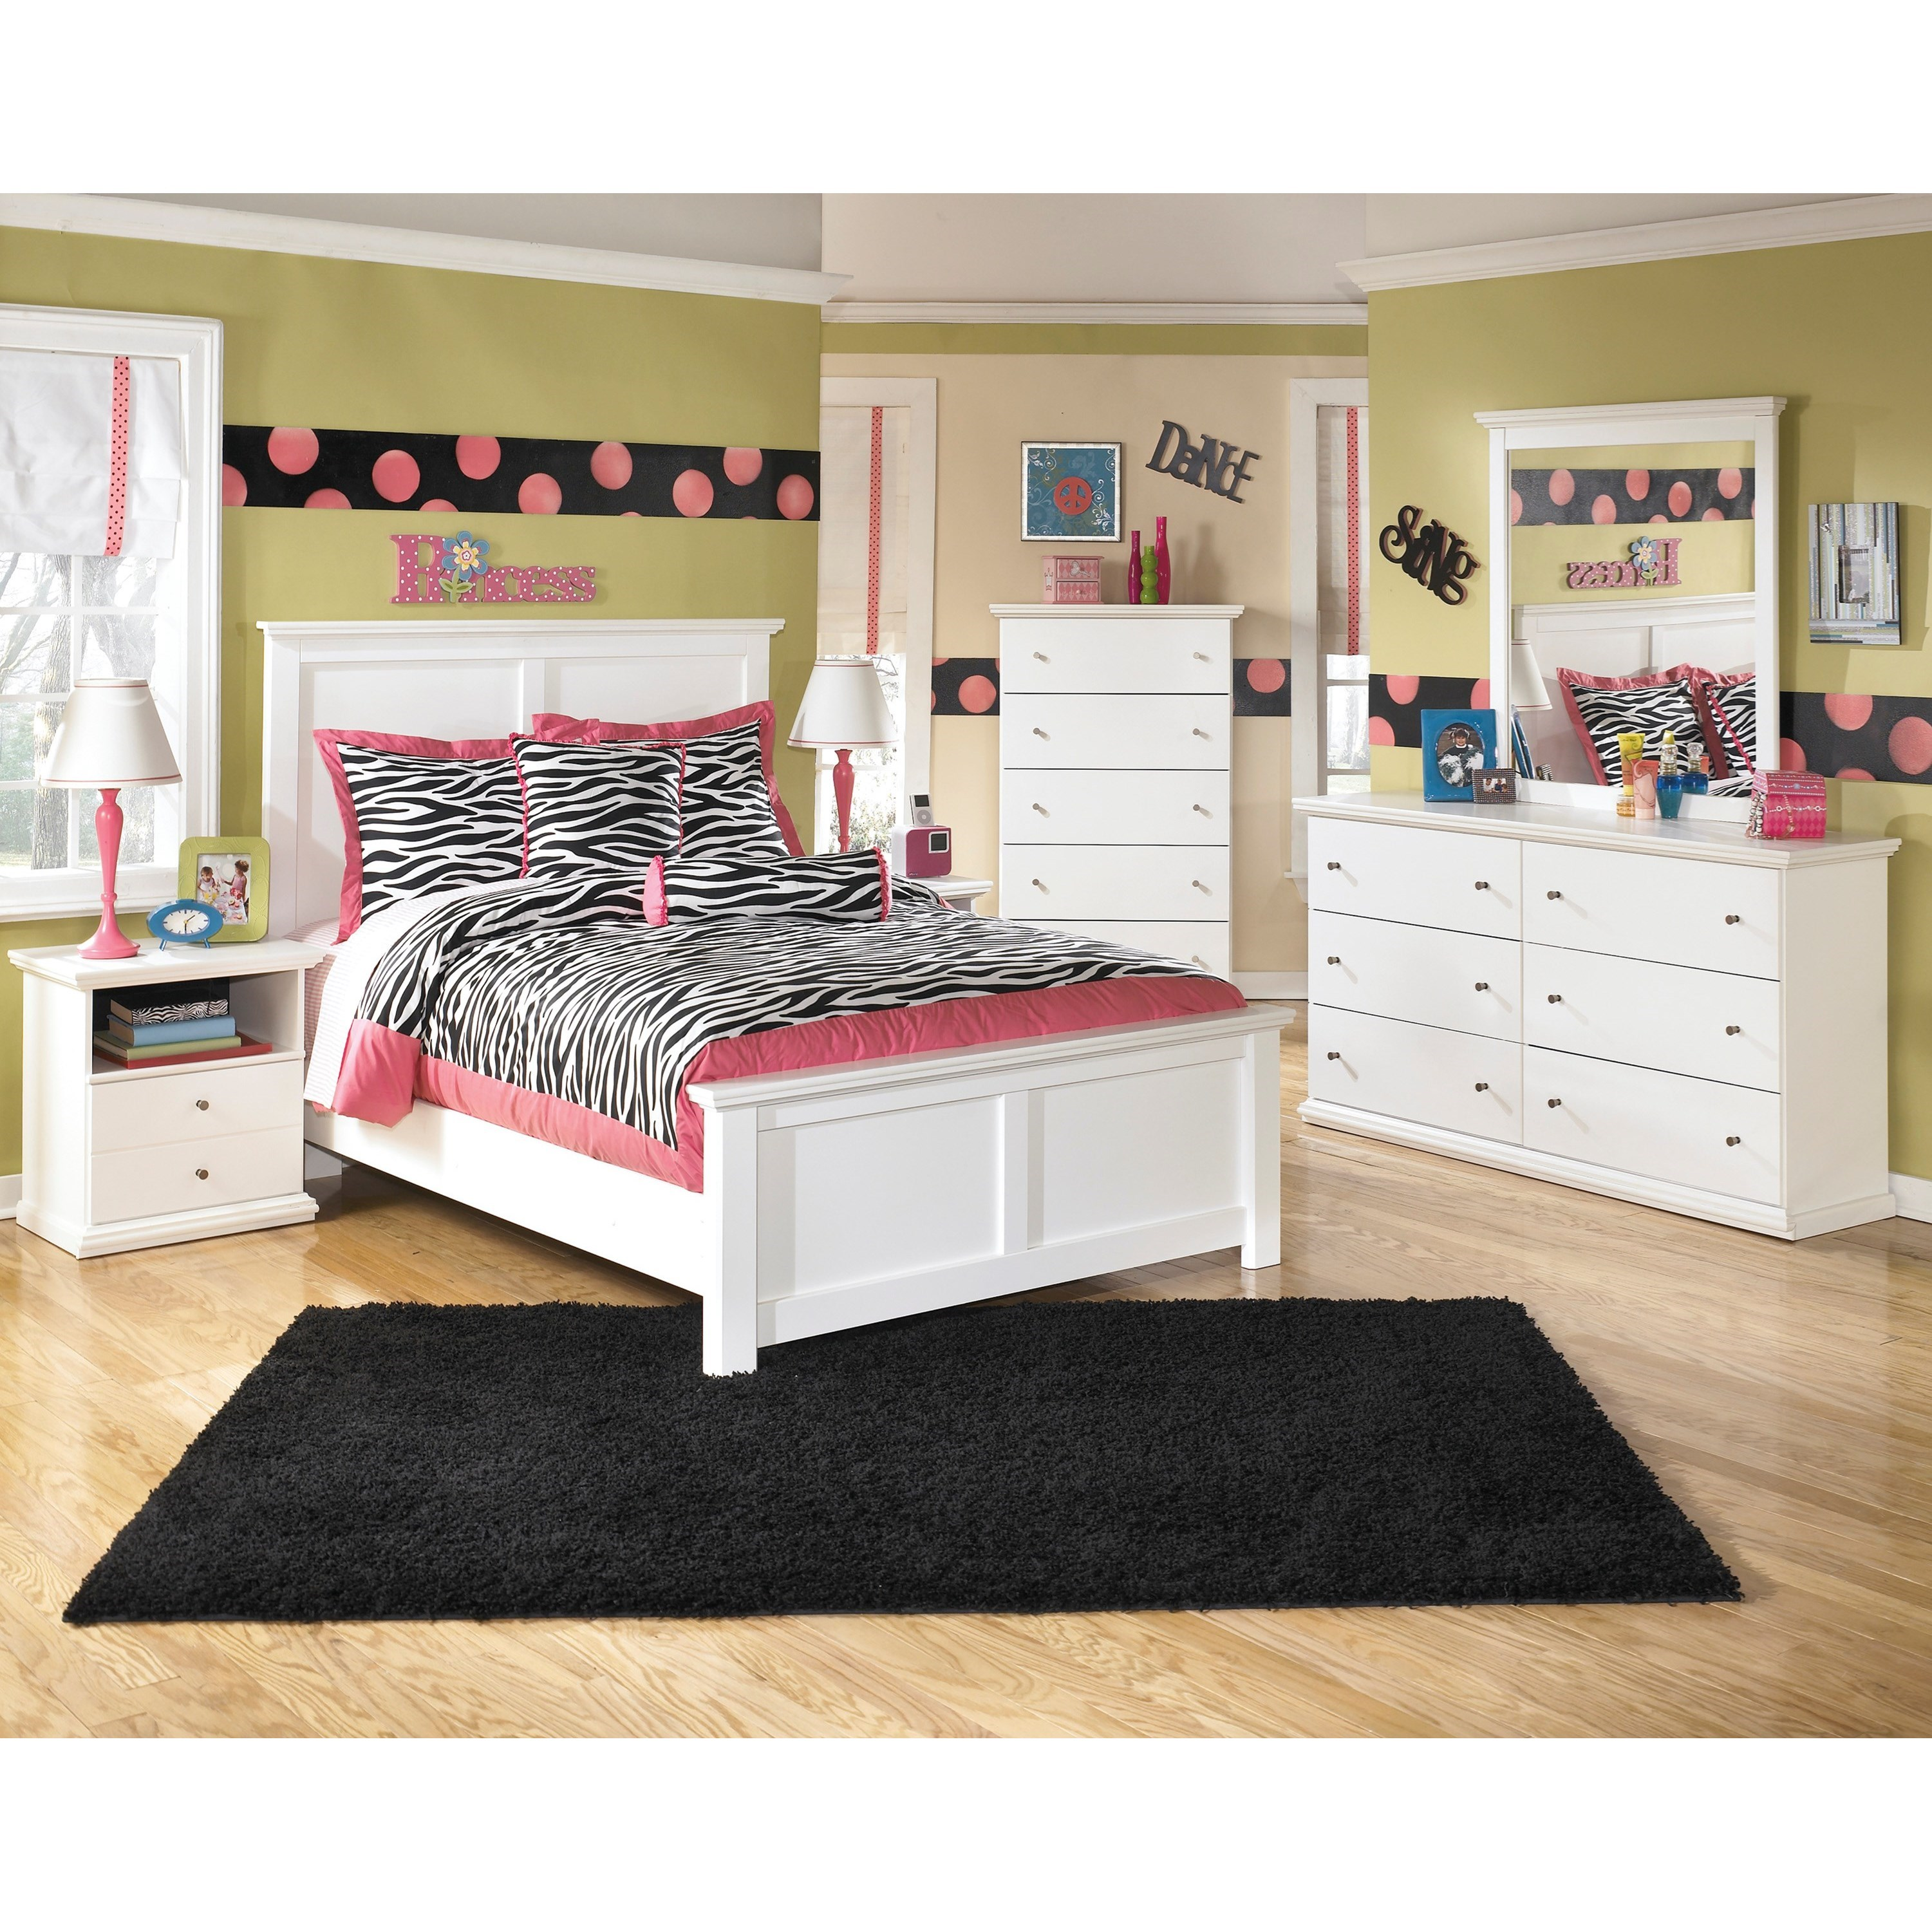 Signature design by ashley bostwick shoals full bedroom for Bedroom furniture groups